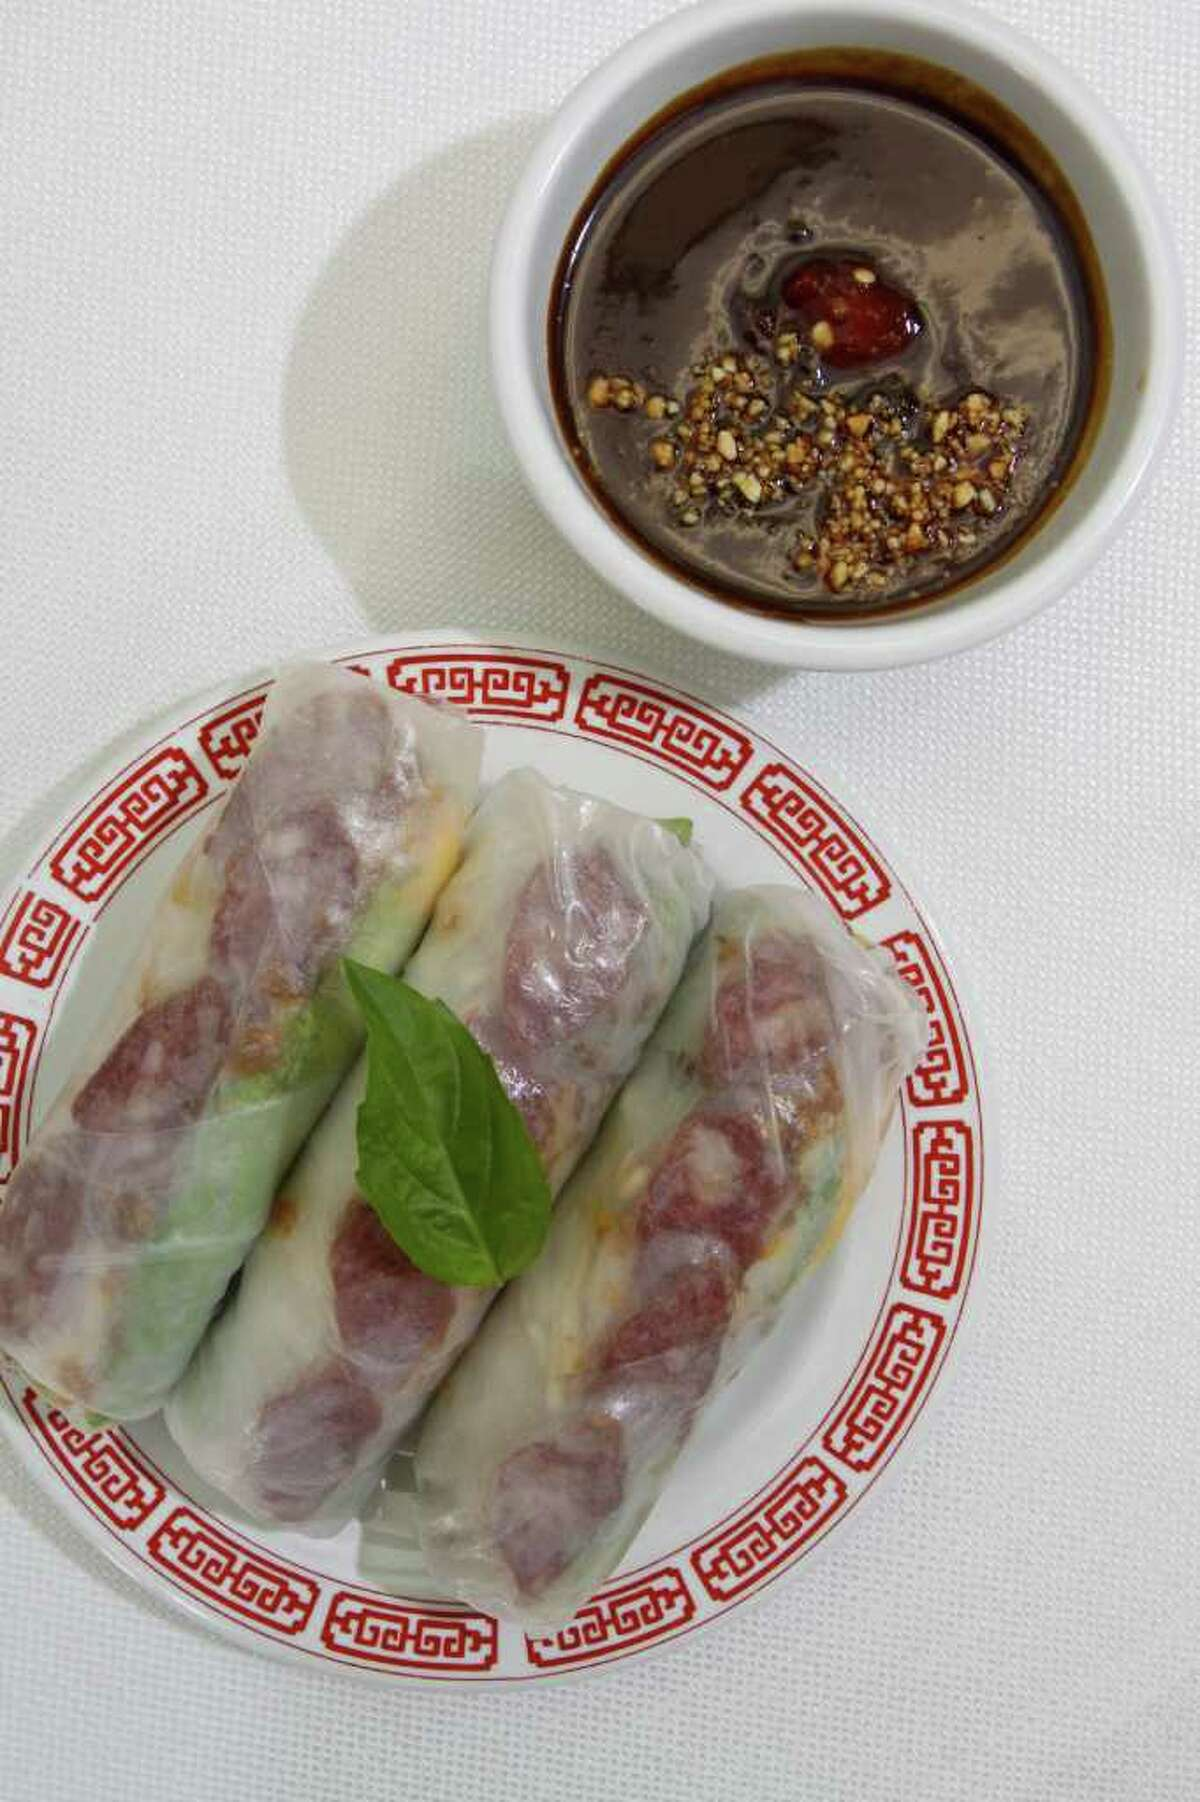 (For the Chronicle/Gary Fountain, November 5, 2011) Bo' Bia' (autumn rolls) at Cafe TH at 2108 Pease Street.